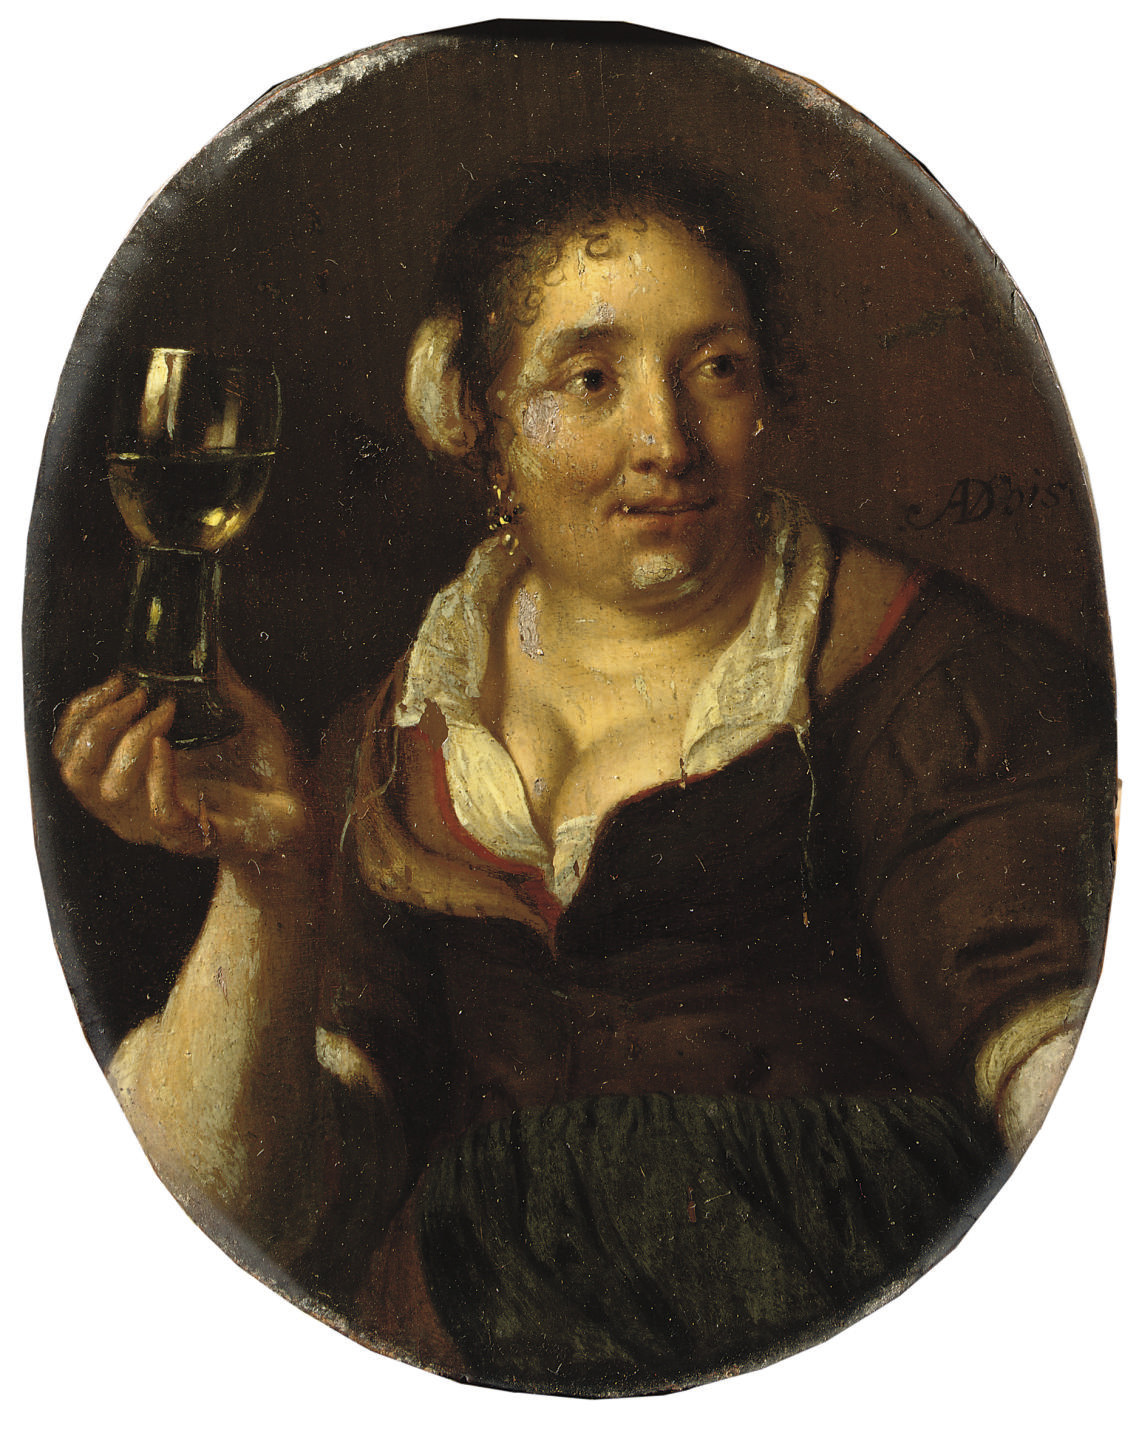 A peasant woman holding a glass of wine